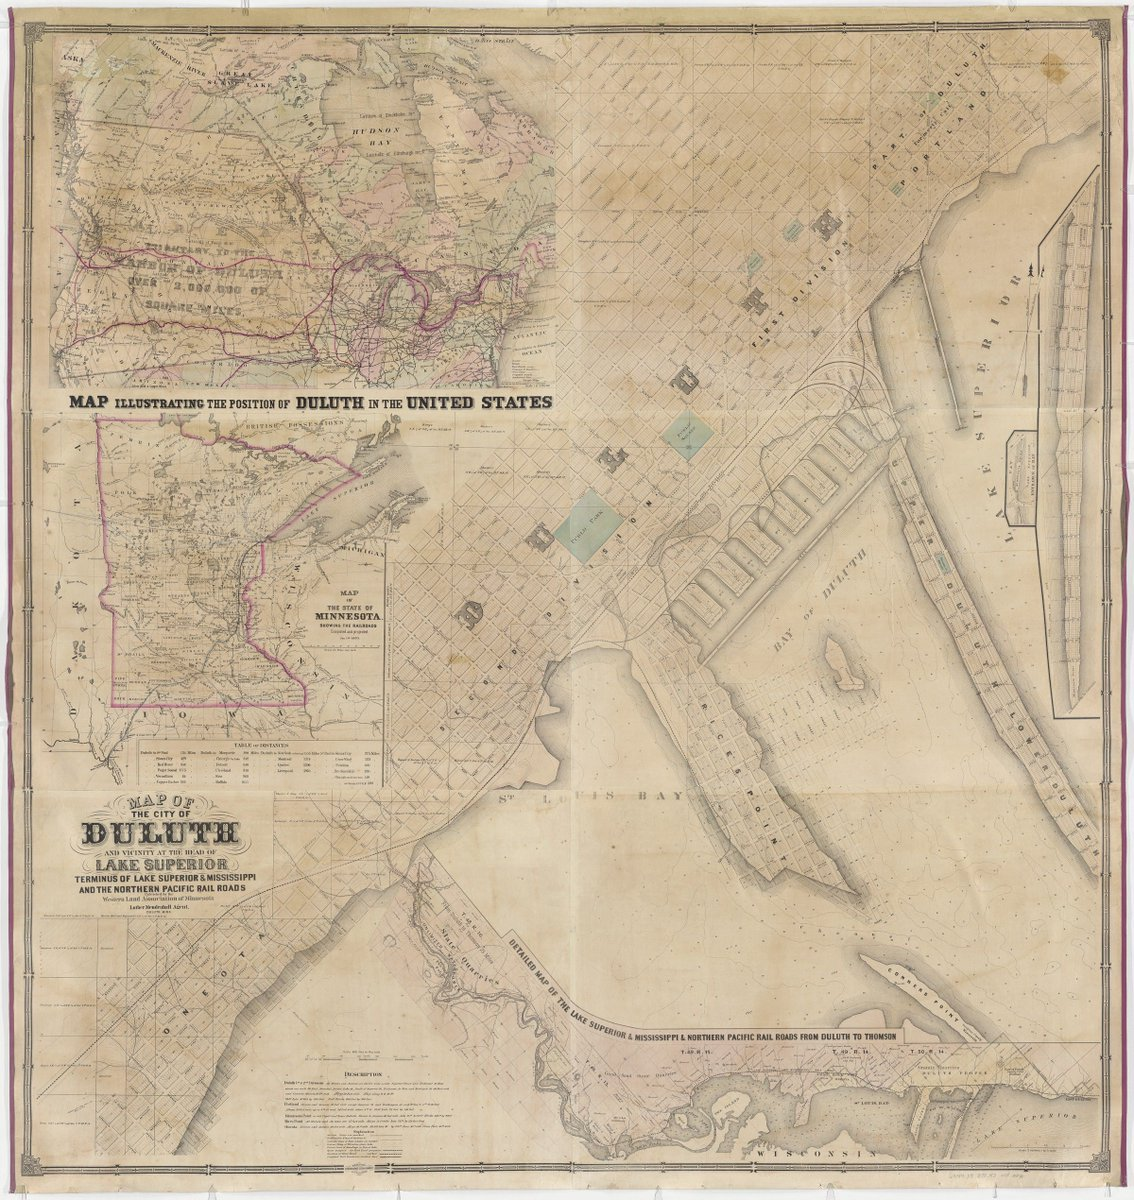 a city in the middle of a page with the bay to the lower right and in the upper left insets showing Duluth in Minnesota and Minnesota along the US railway system